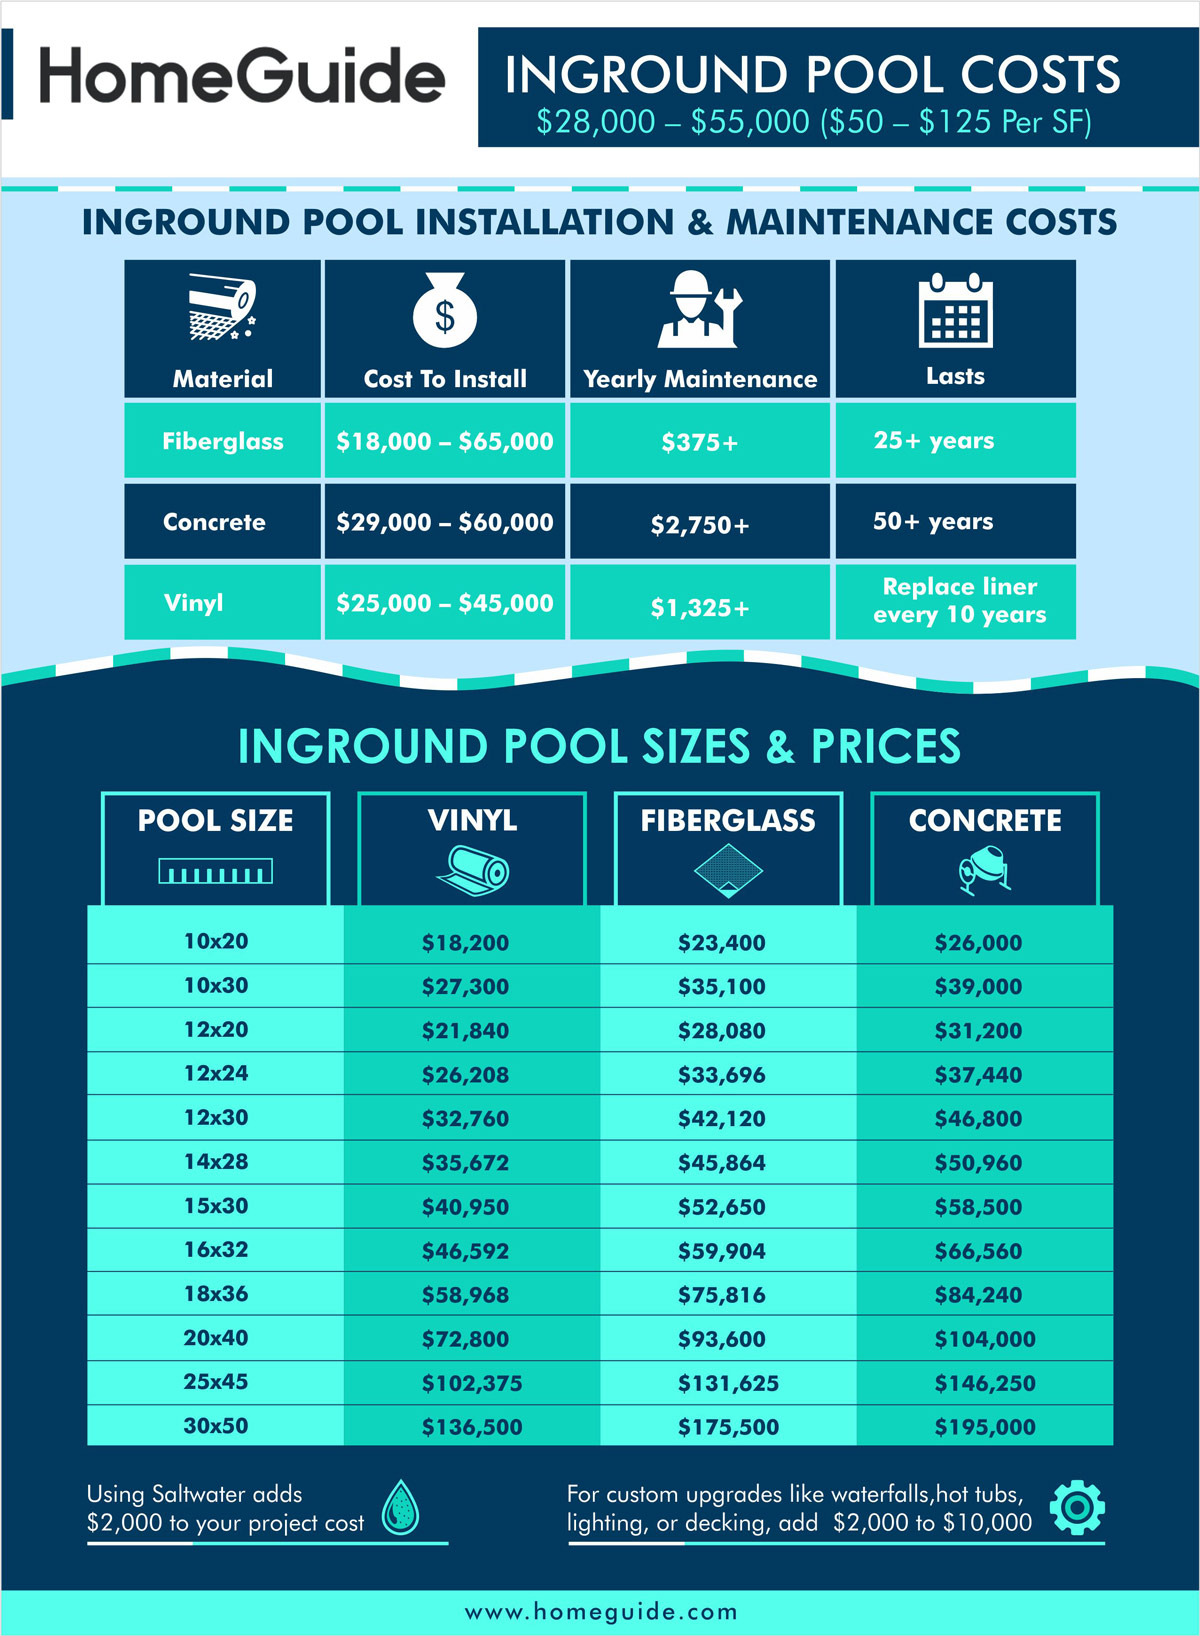 homeguide inground pool cost infographic